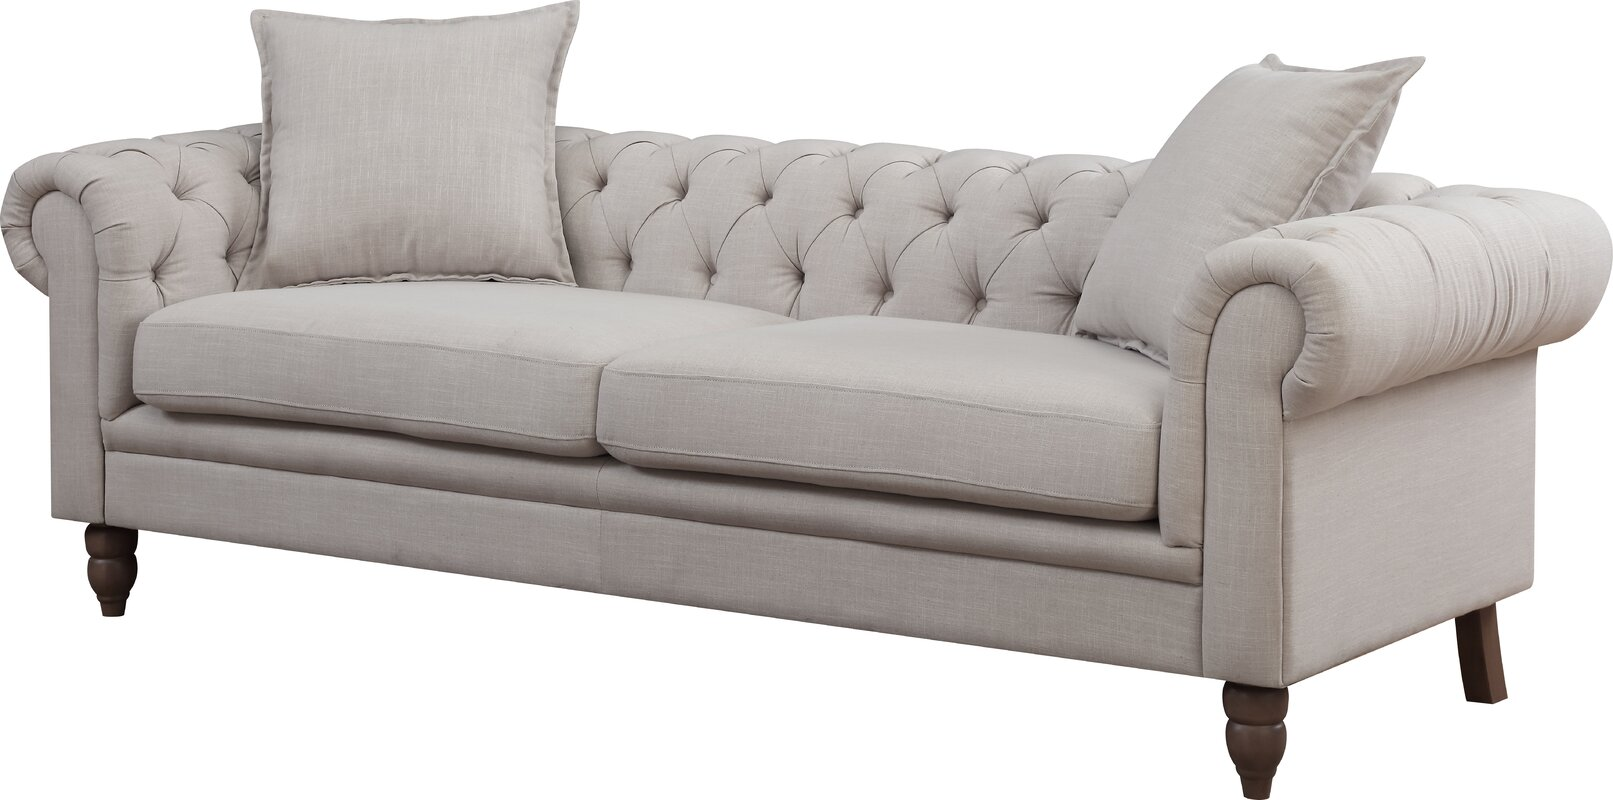 AC Pacific Juliet Chesterfield Sofa& Reviews Wayfair